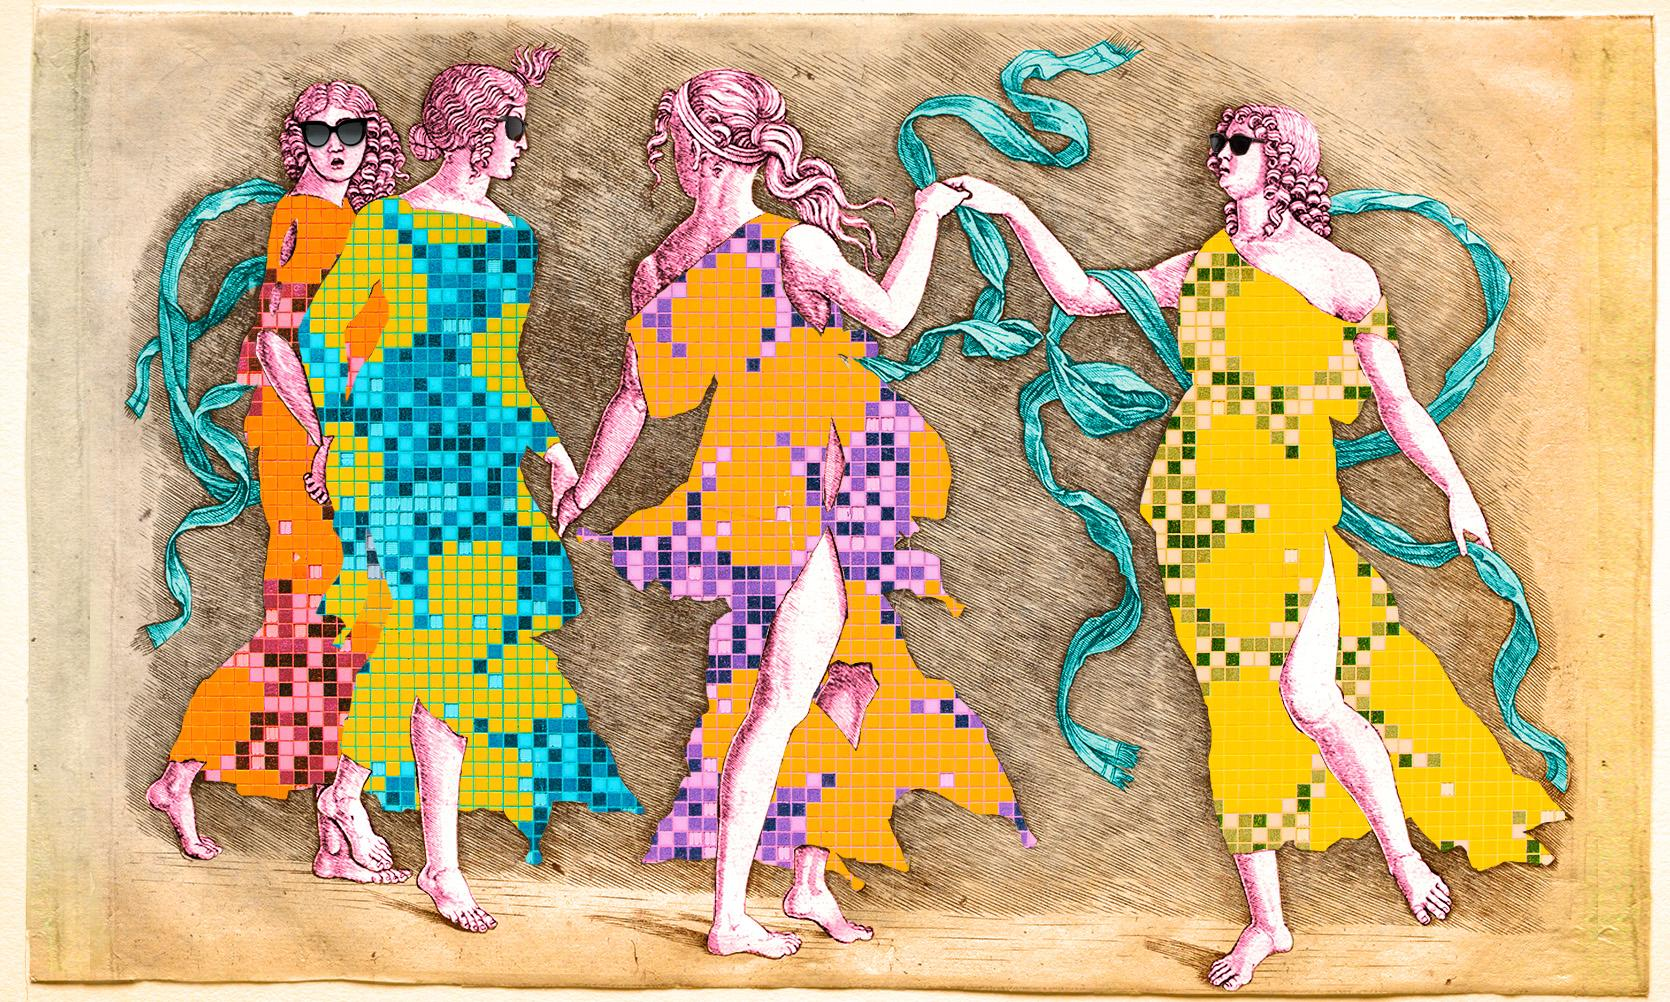 digital art featuring dancing figures from the museum's collection